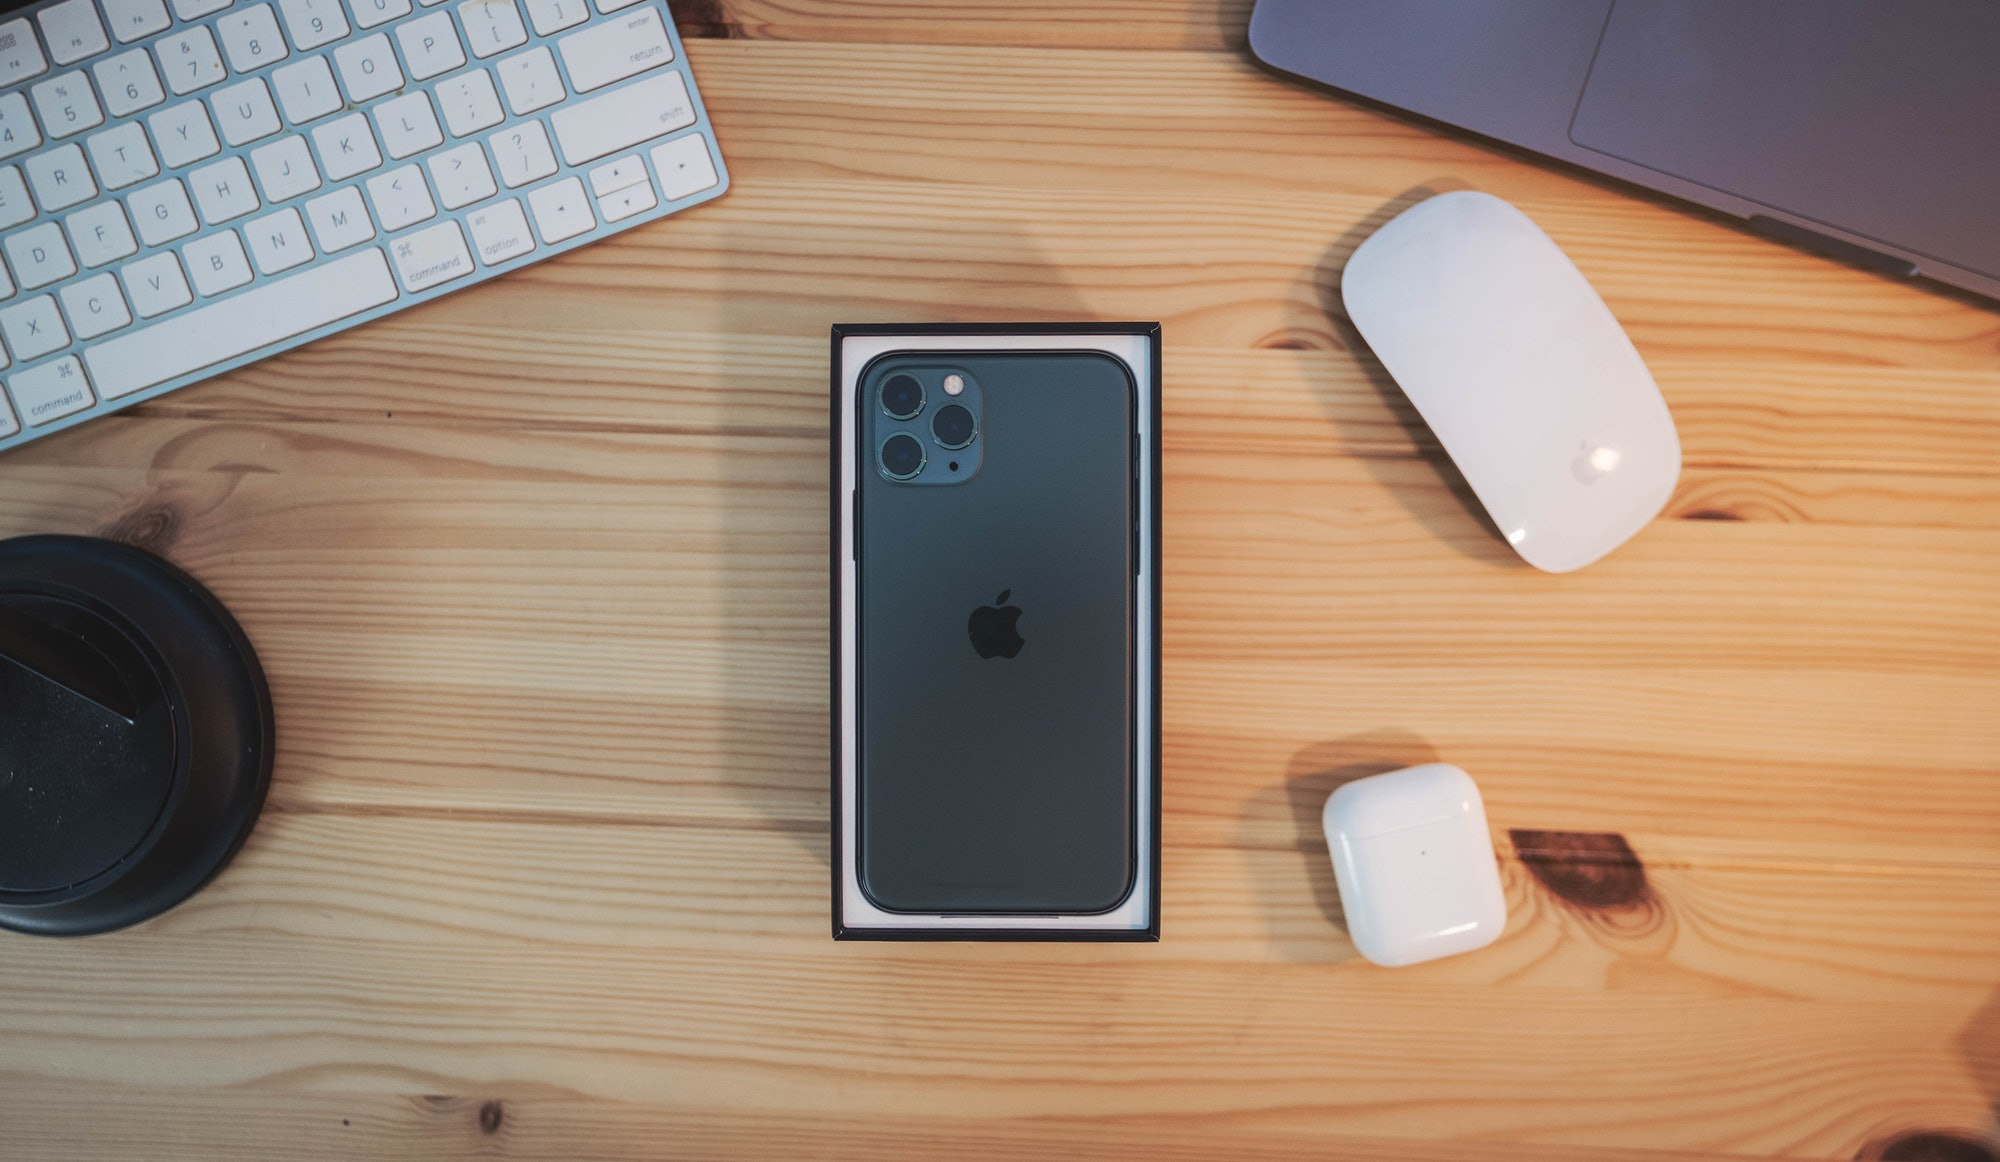 The iPhone 11 could find itself better than any smartphone before.